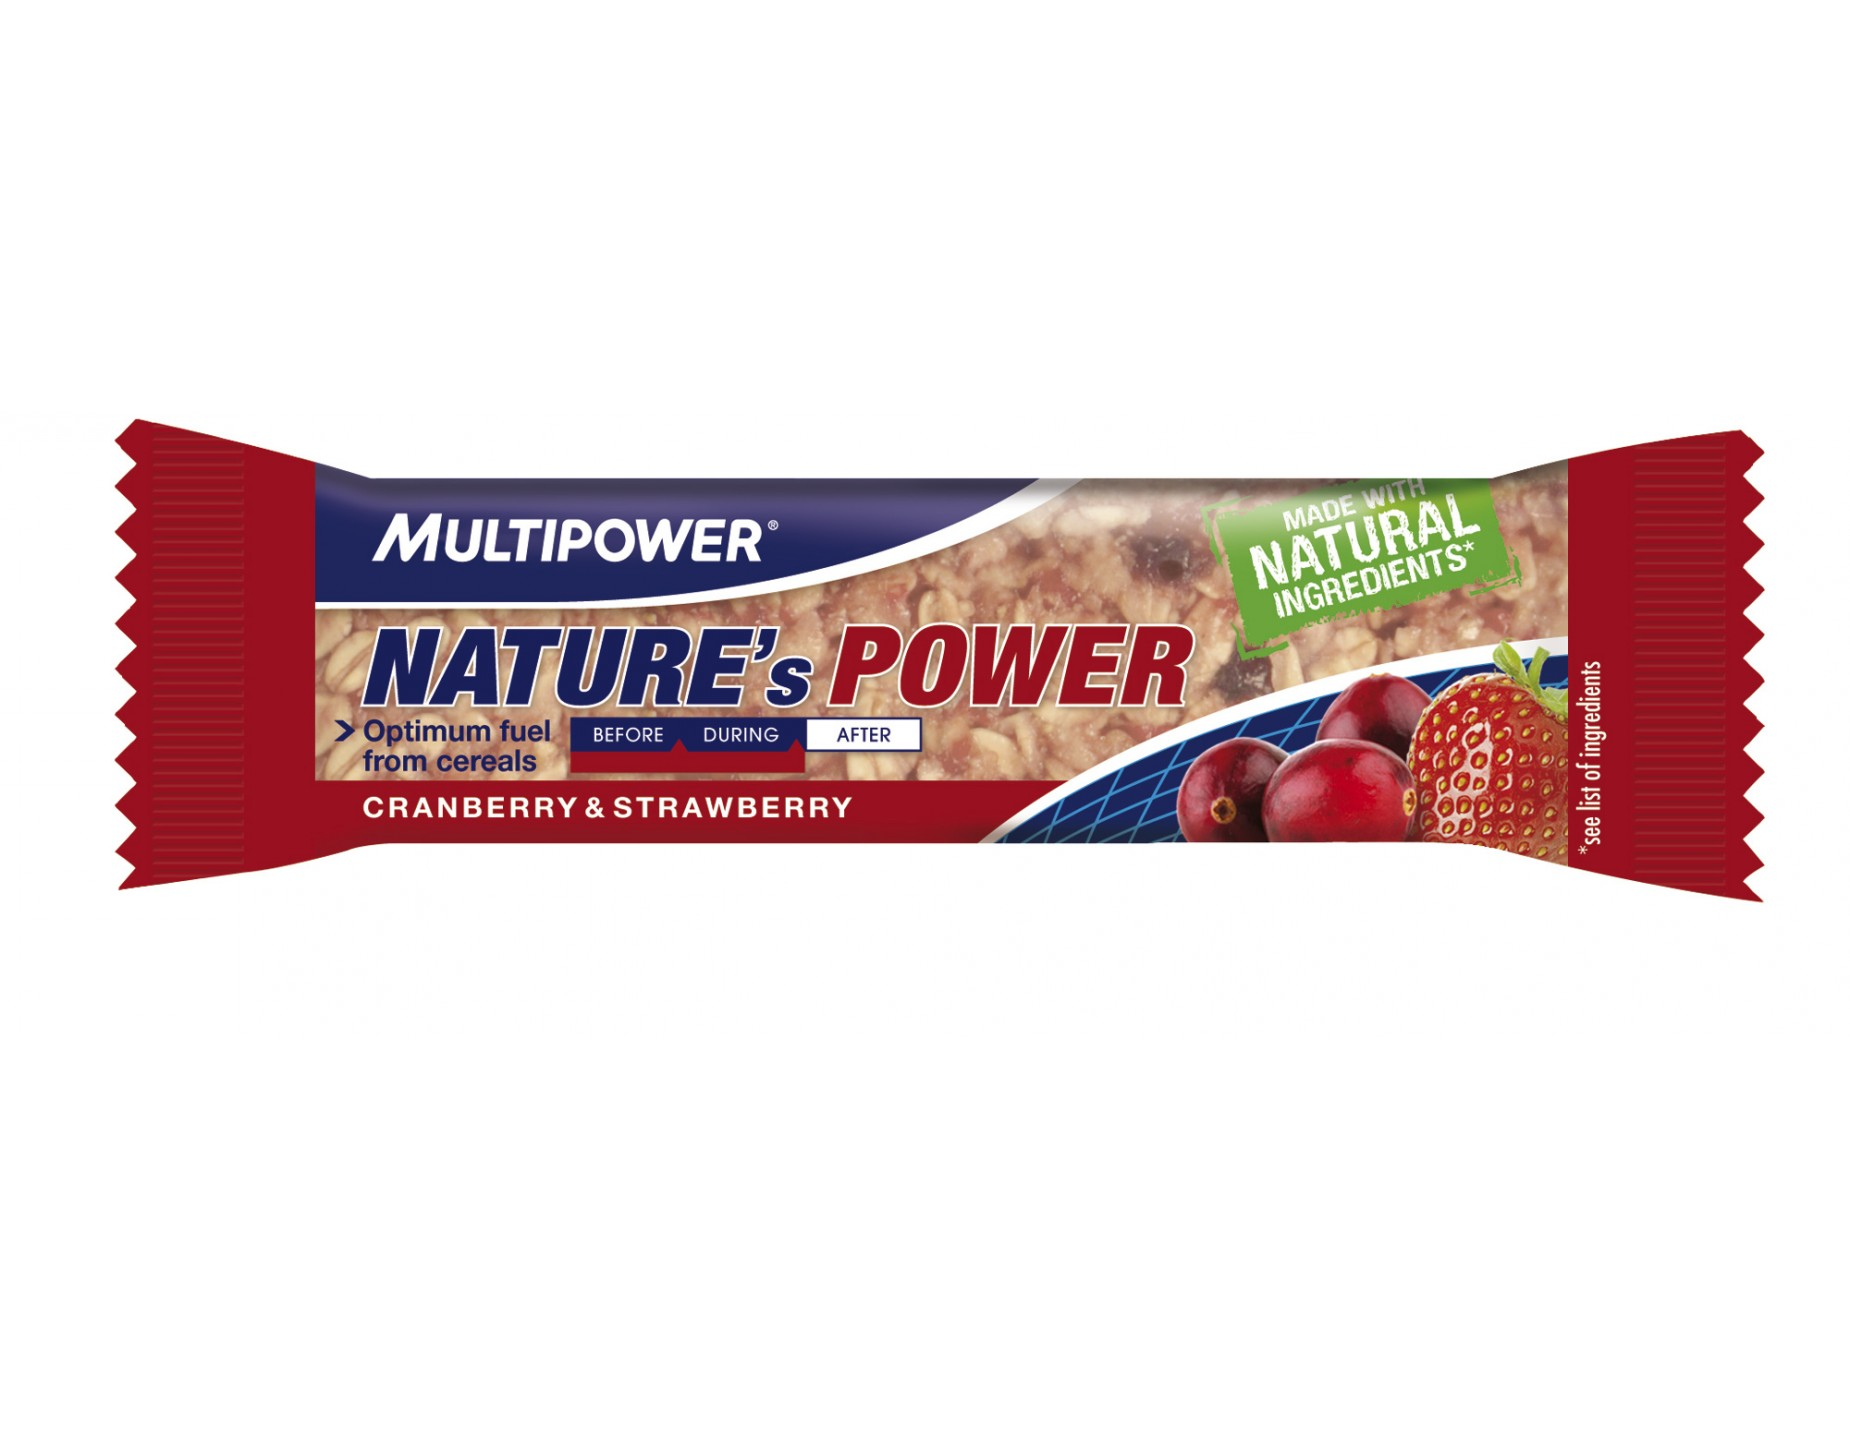 Multipower 'Nature's Power' bars